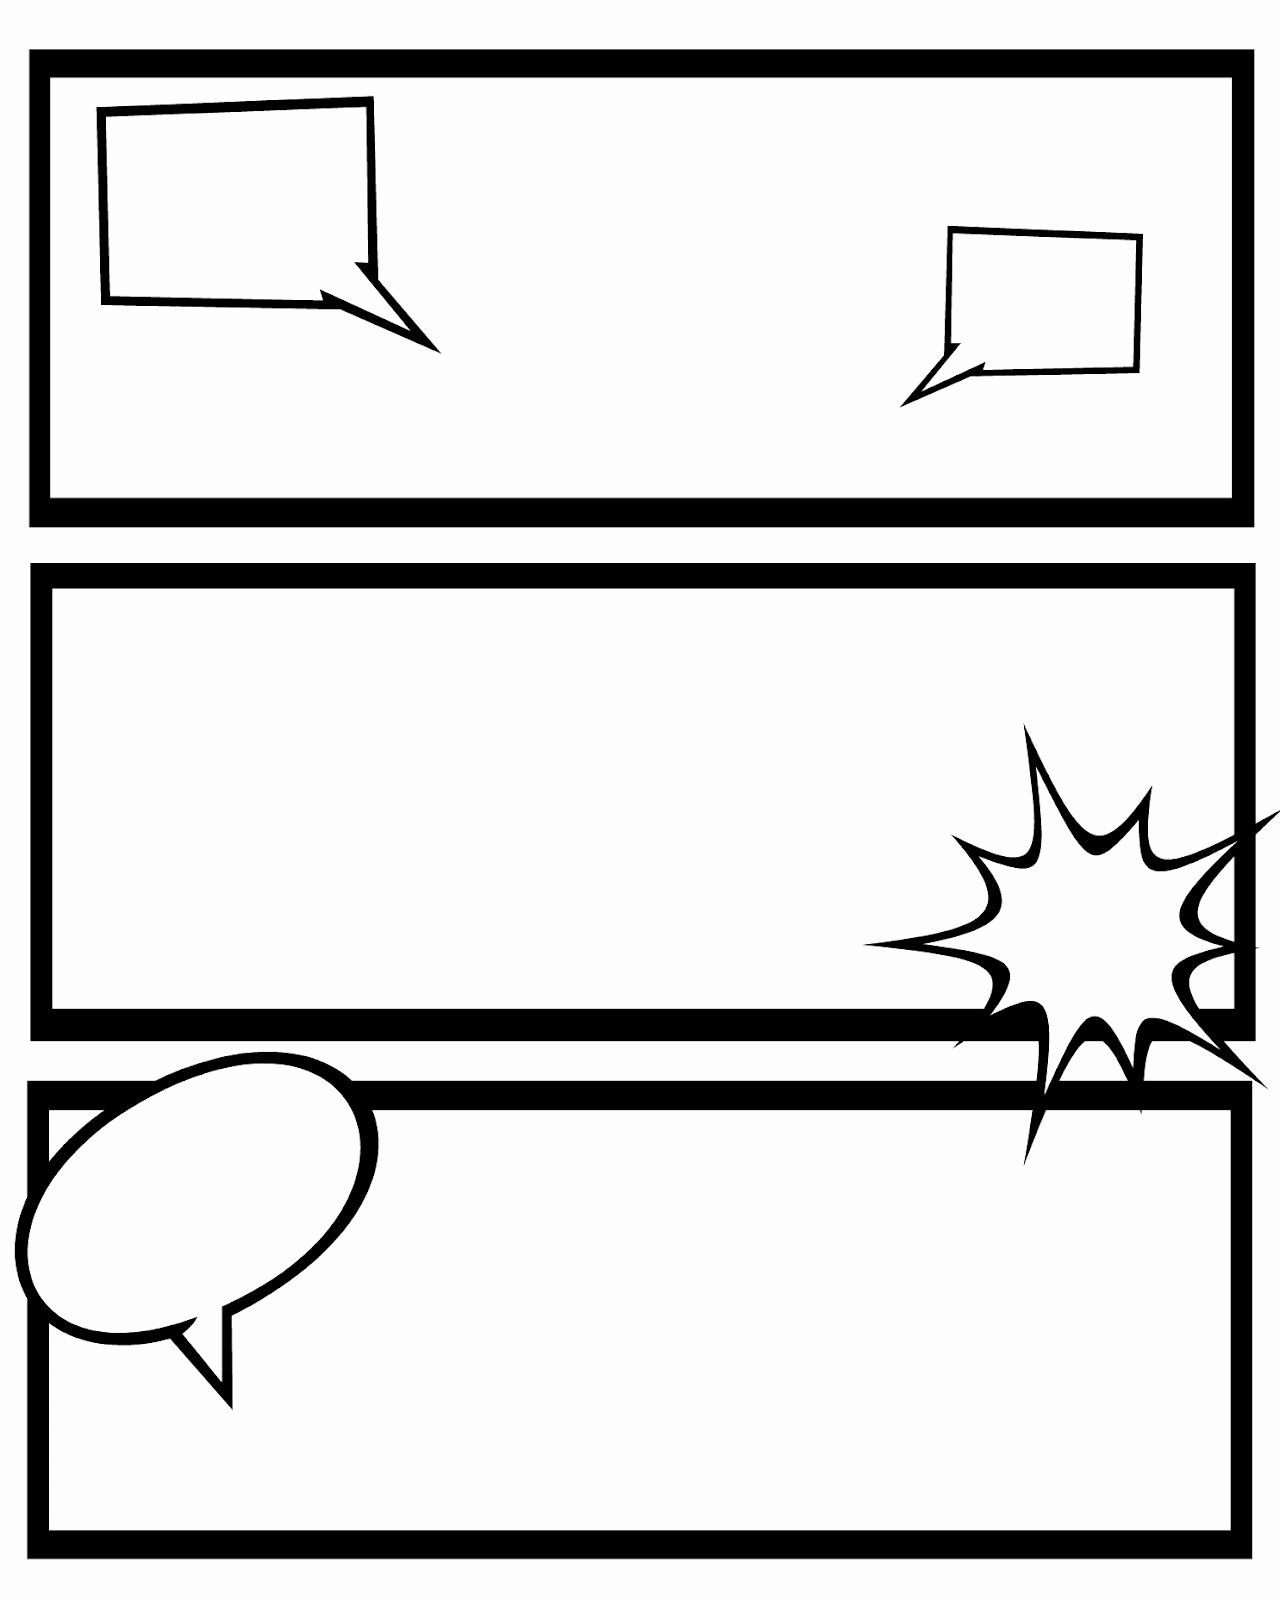 Comic Strip Template Pdf Awesome Printable Ic Strips for Narration Sweet Hot Mess